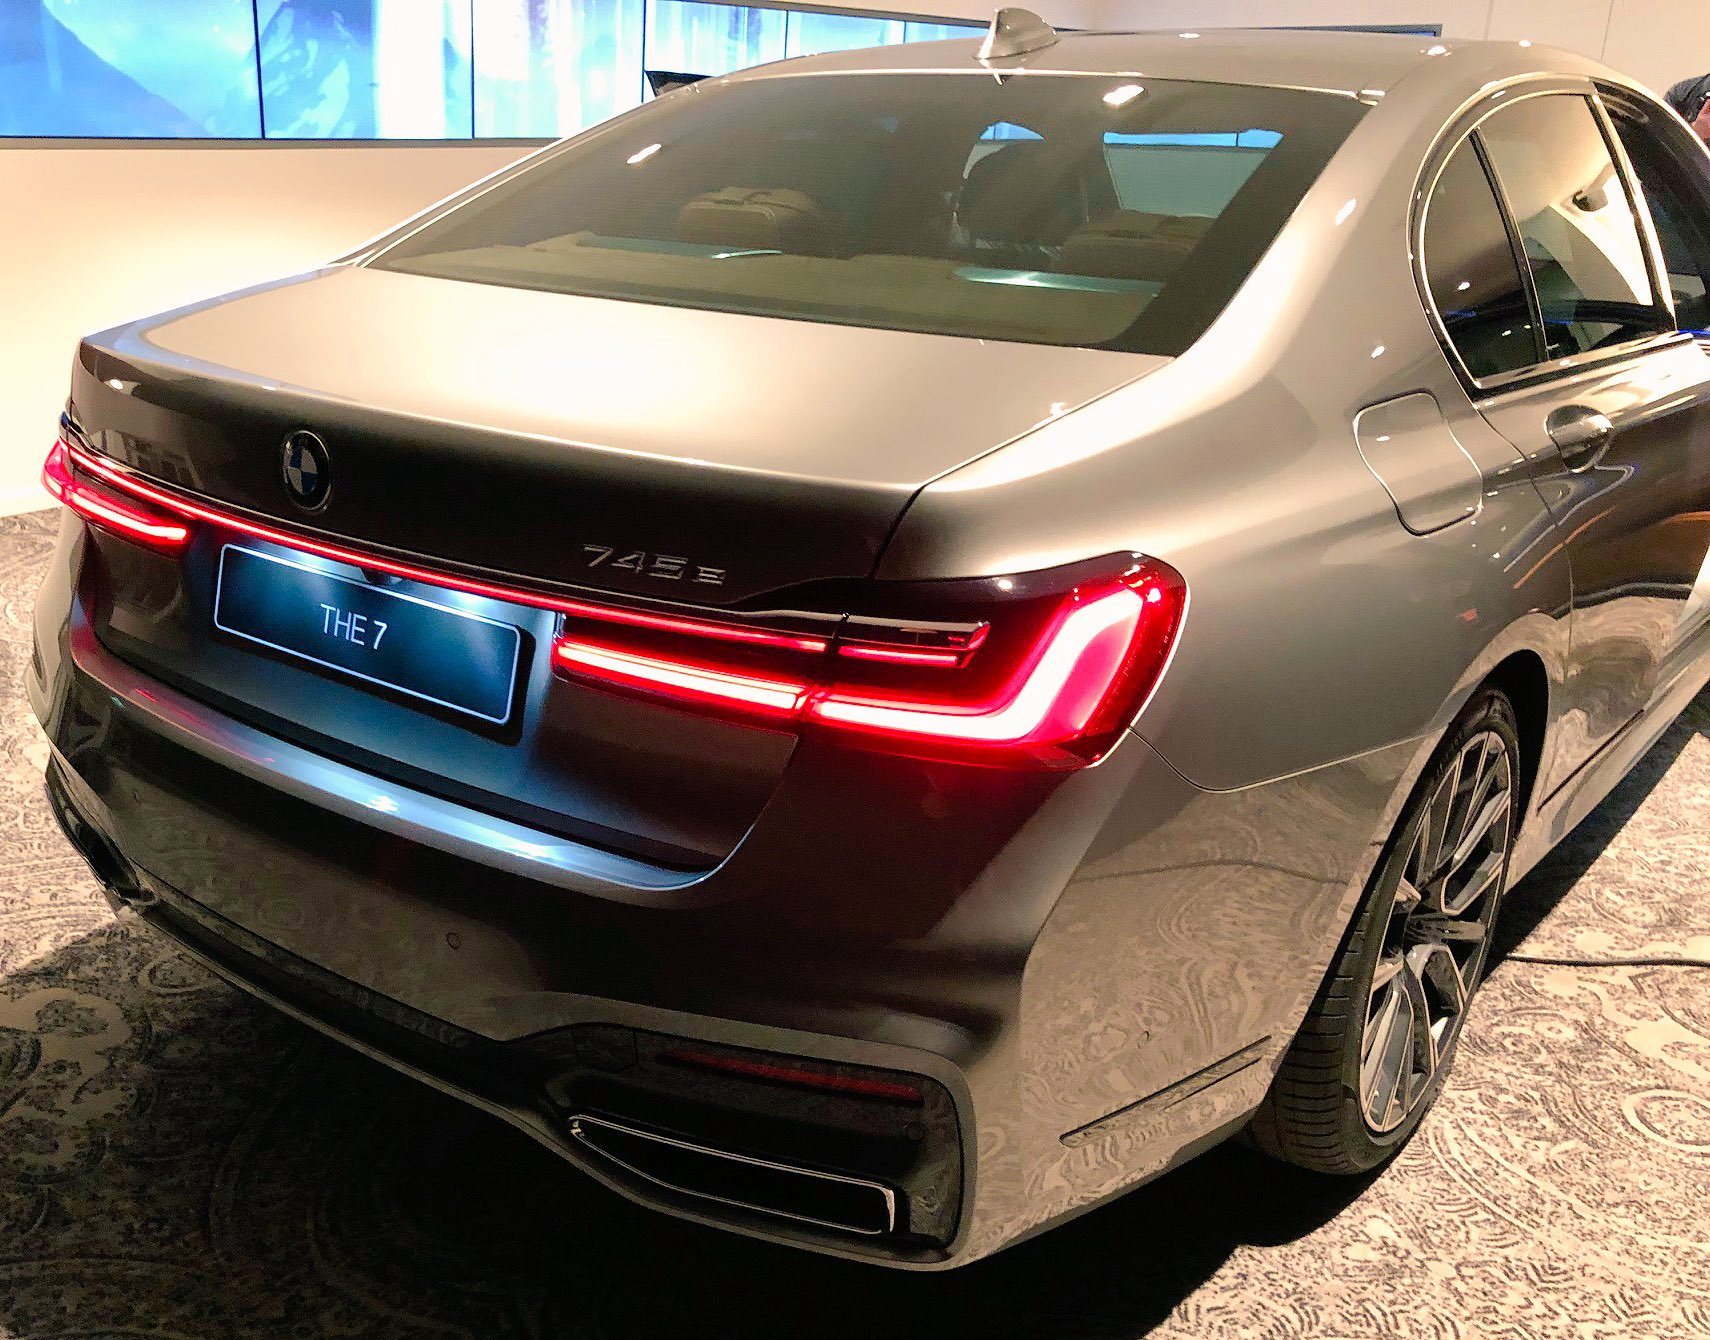 Bmw 7 Series Facelift Fully Leaked Front And Rear Gtspirit